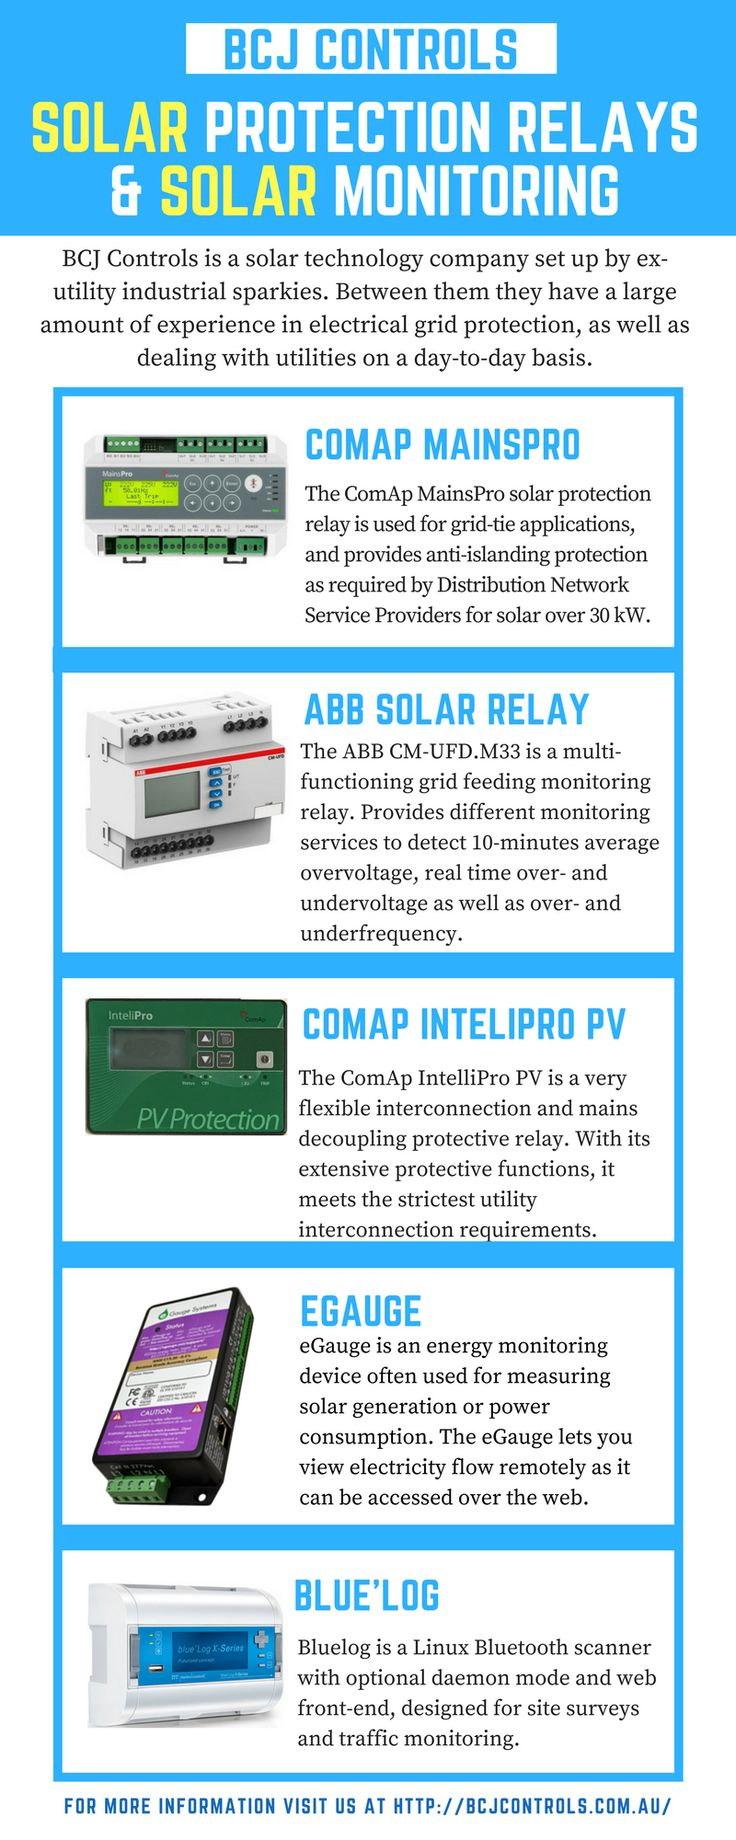 BCJ Controls as a solar technology company providing solar protection relay and solar monitoring device. We provide quality products and installation. Visit us for more info: http://bcjcontrols.com.au.  #SolarProtectionRelay #ComapMainsPro #MainsPro #eGauge #eGaugeAustralia #BlueLog #BlueLogDataLogger #ComApIntelliPro #ComApInteliPro